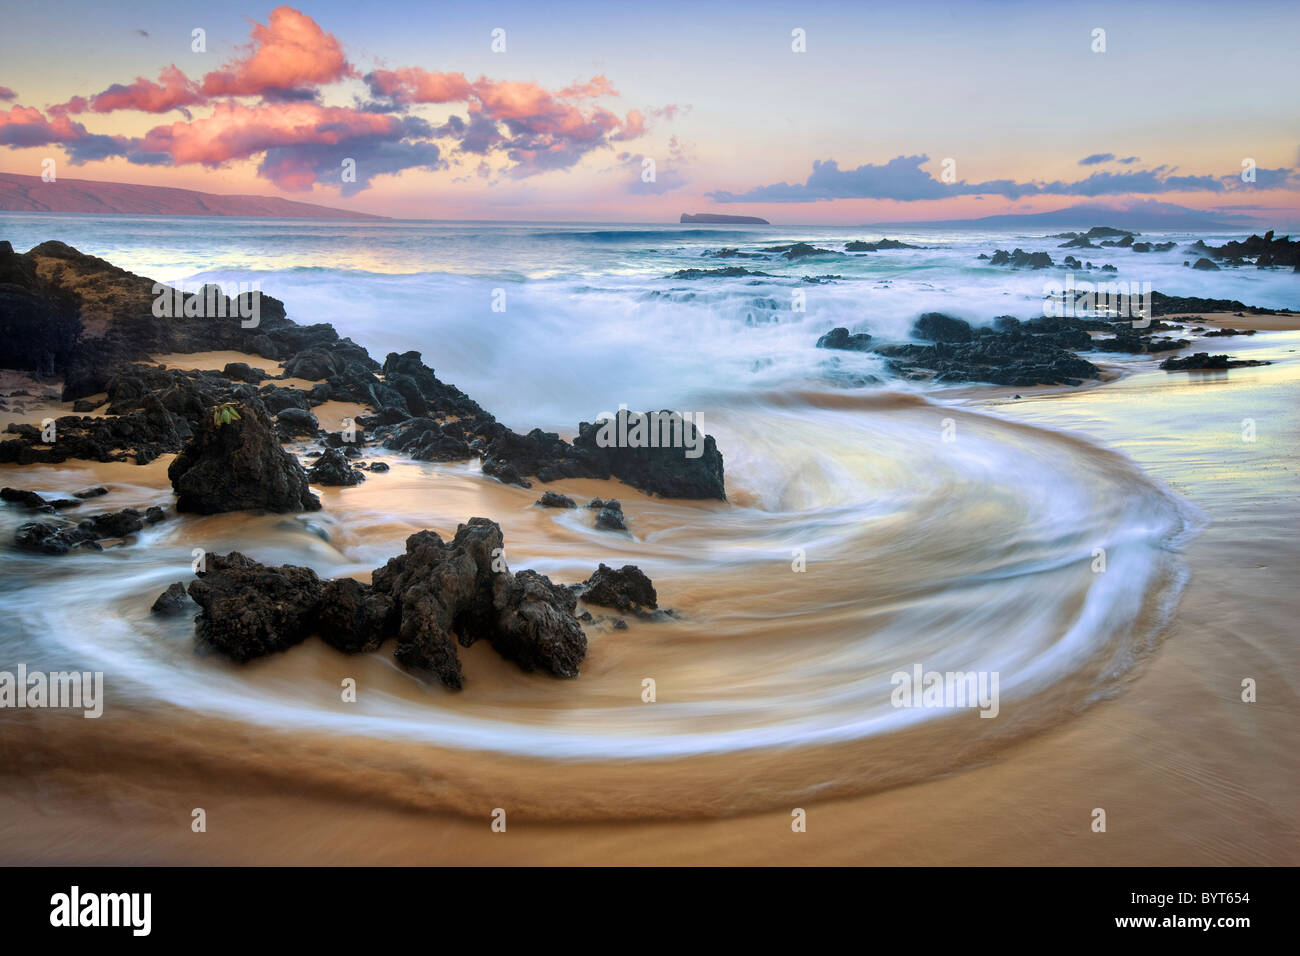 Wave pattern and sunrise clouds. Maui, Hawaii - Stock Image